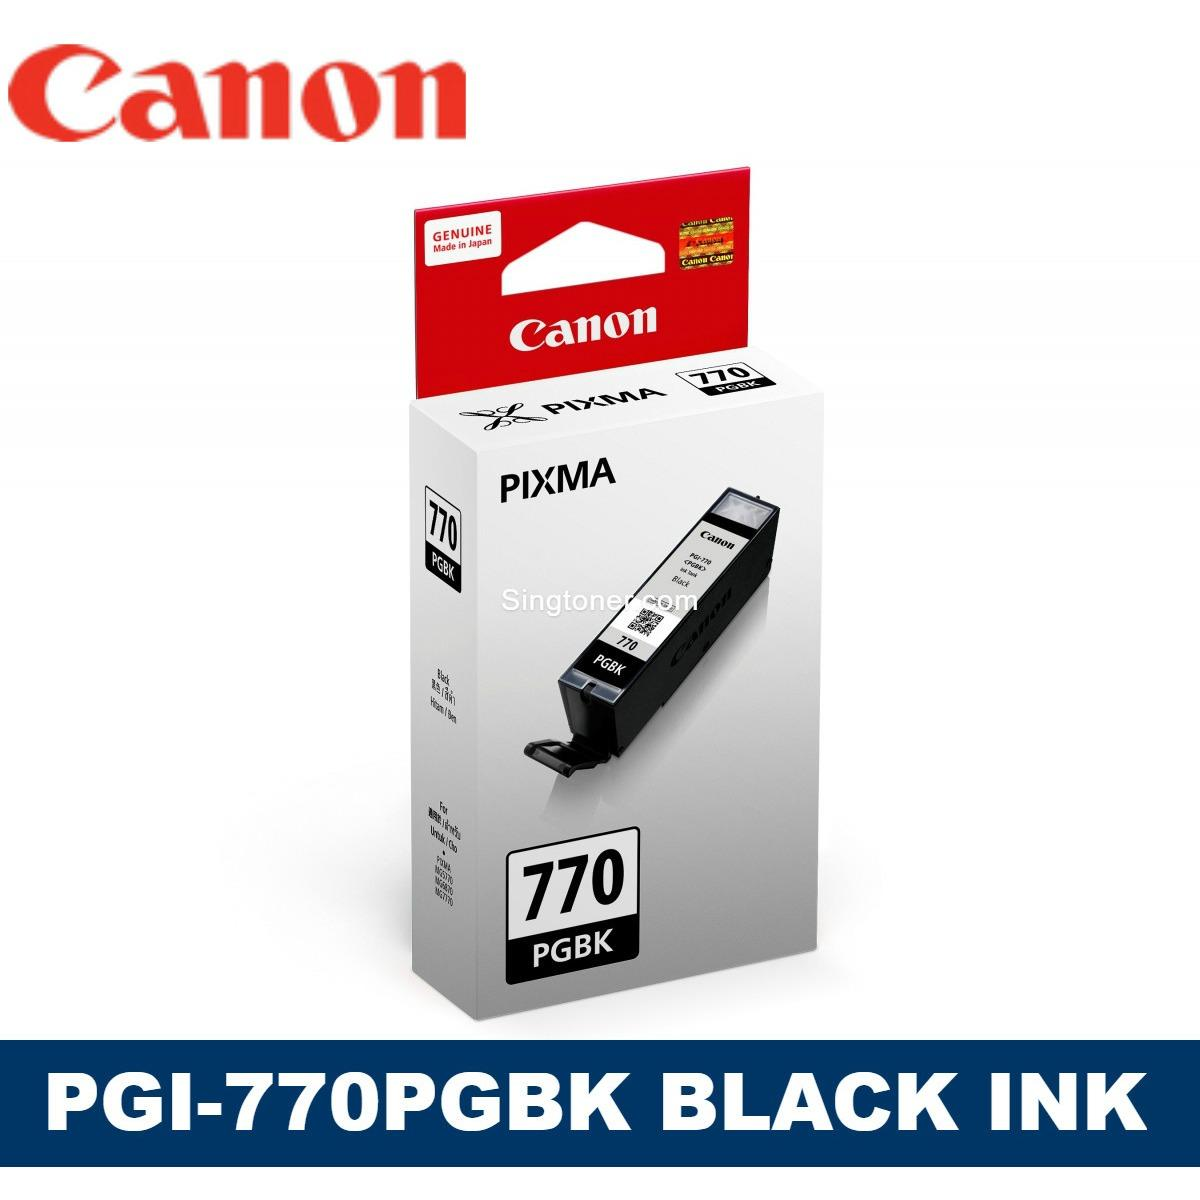 Compare Original Canon Pgi 770 Cli 771 Pgbk Black Cyan Magenta Yellow Grey Ink For Pixma Mg7770 Pixma Mg6870 Pixma Mg5770 Pgi770 Pgi 770 Cli771 Cli 771 Prices